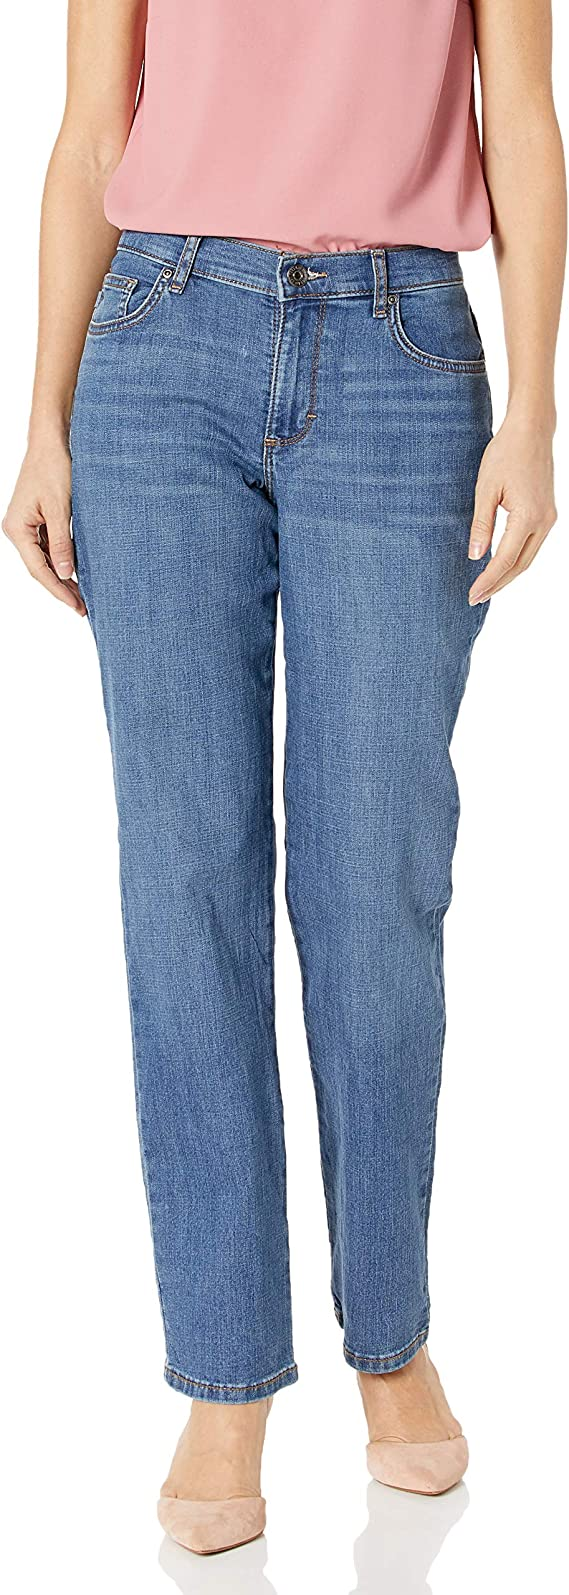 Lee Women's Relaxed Fit Straight-Leg Jean Denim straight leg denim for women | Denim Fashion for Women